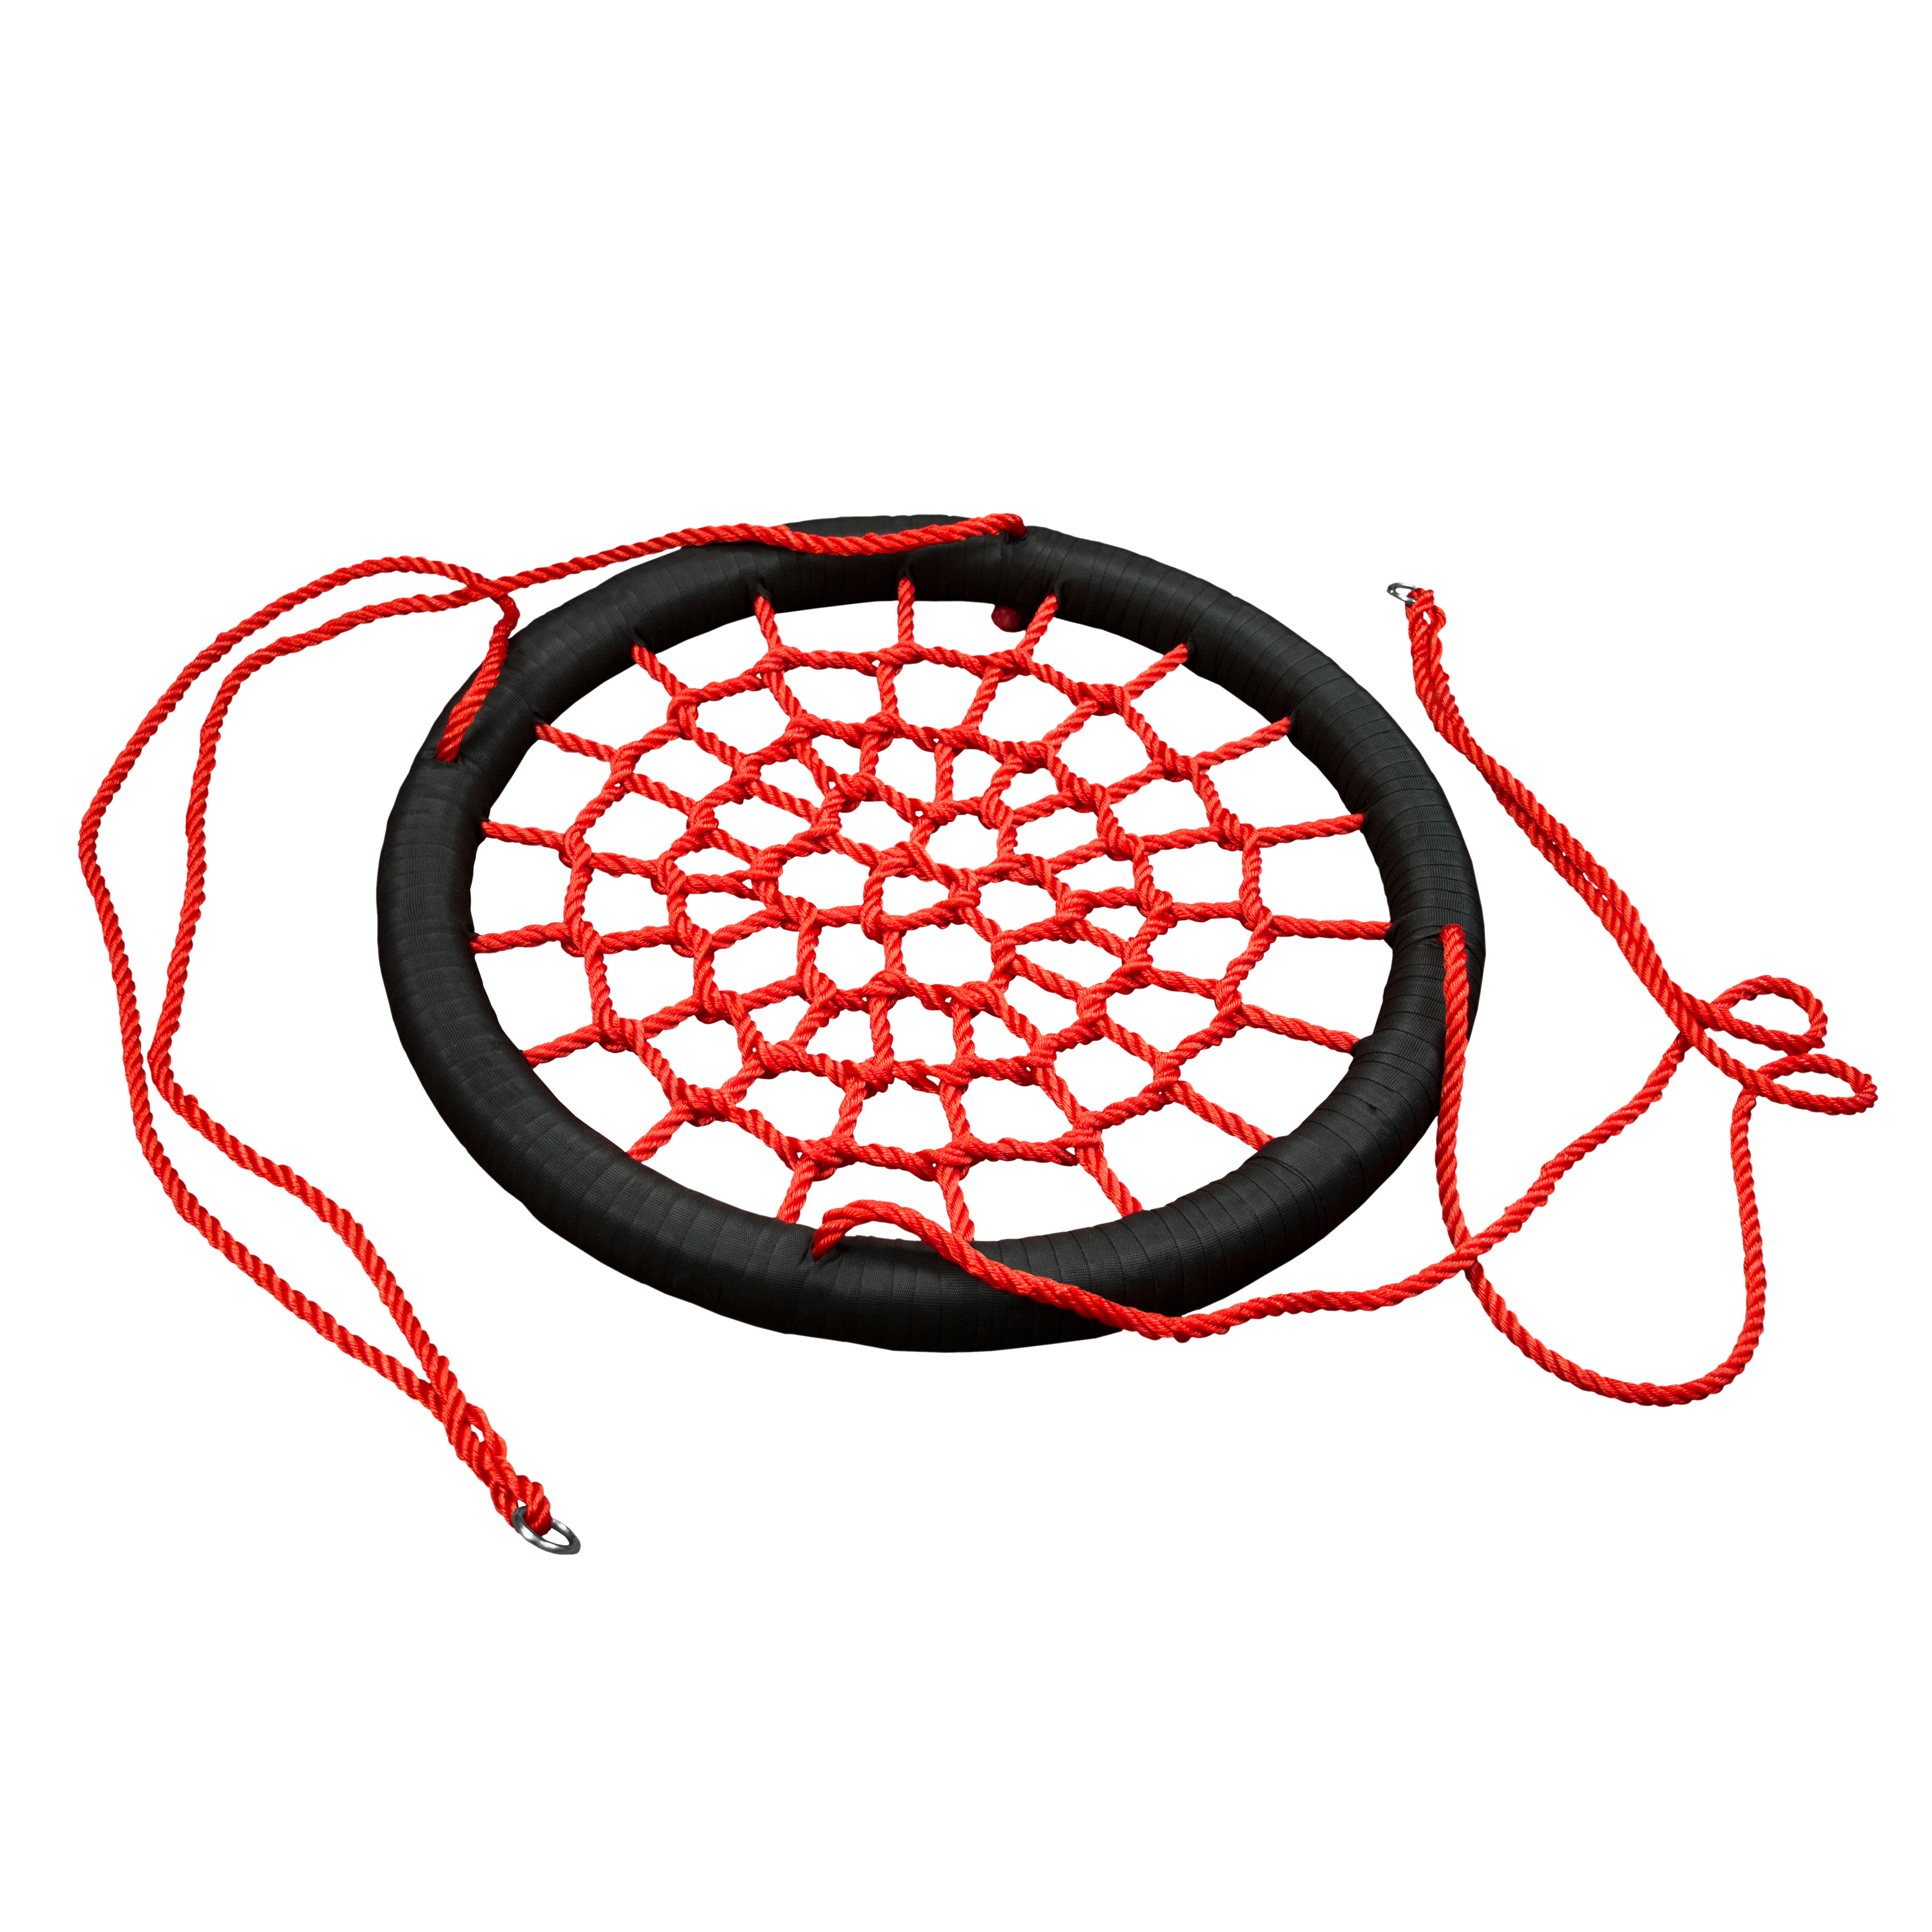 Gorilla Playsets Woven Rope Net Orbit Swing, XL, Red